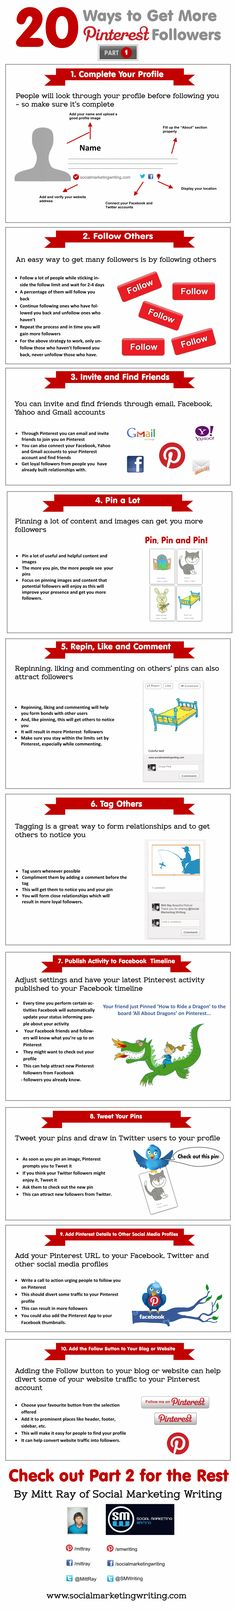 20 Ways to Get More Pinterest Followers Infographic Part 1